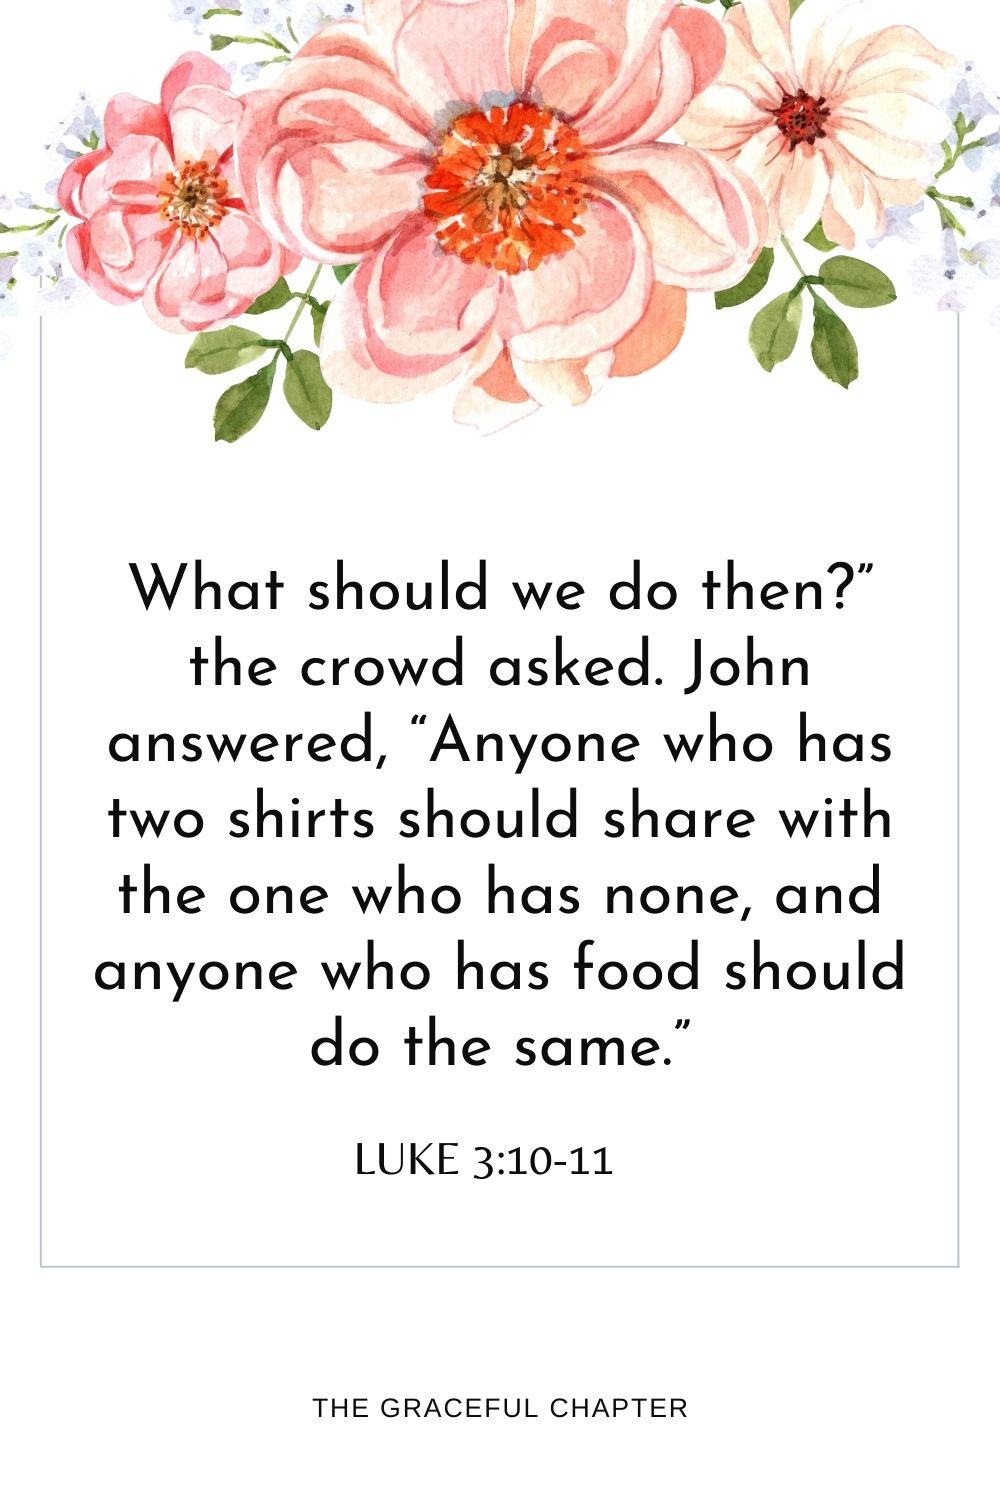 """What should we do then?""""the crowd asked. John answered, """"Anyone who has two shirts should share with the one who has none, and anyone who has food should do the same."""" Luke 3:10-11"""